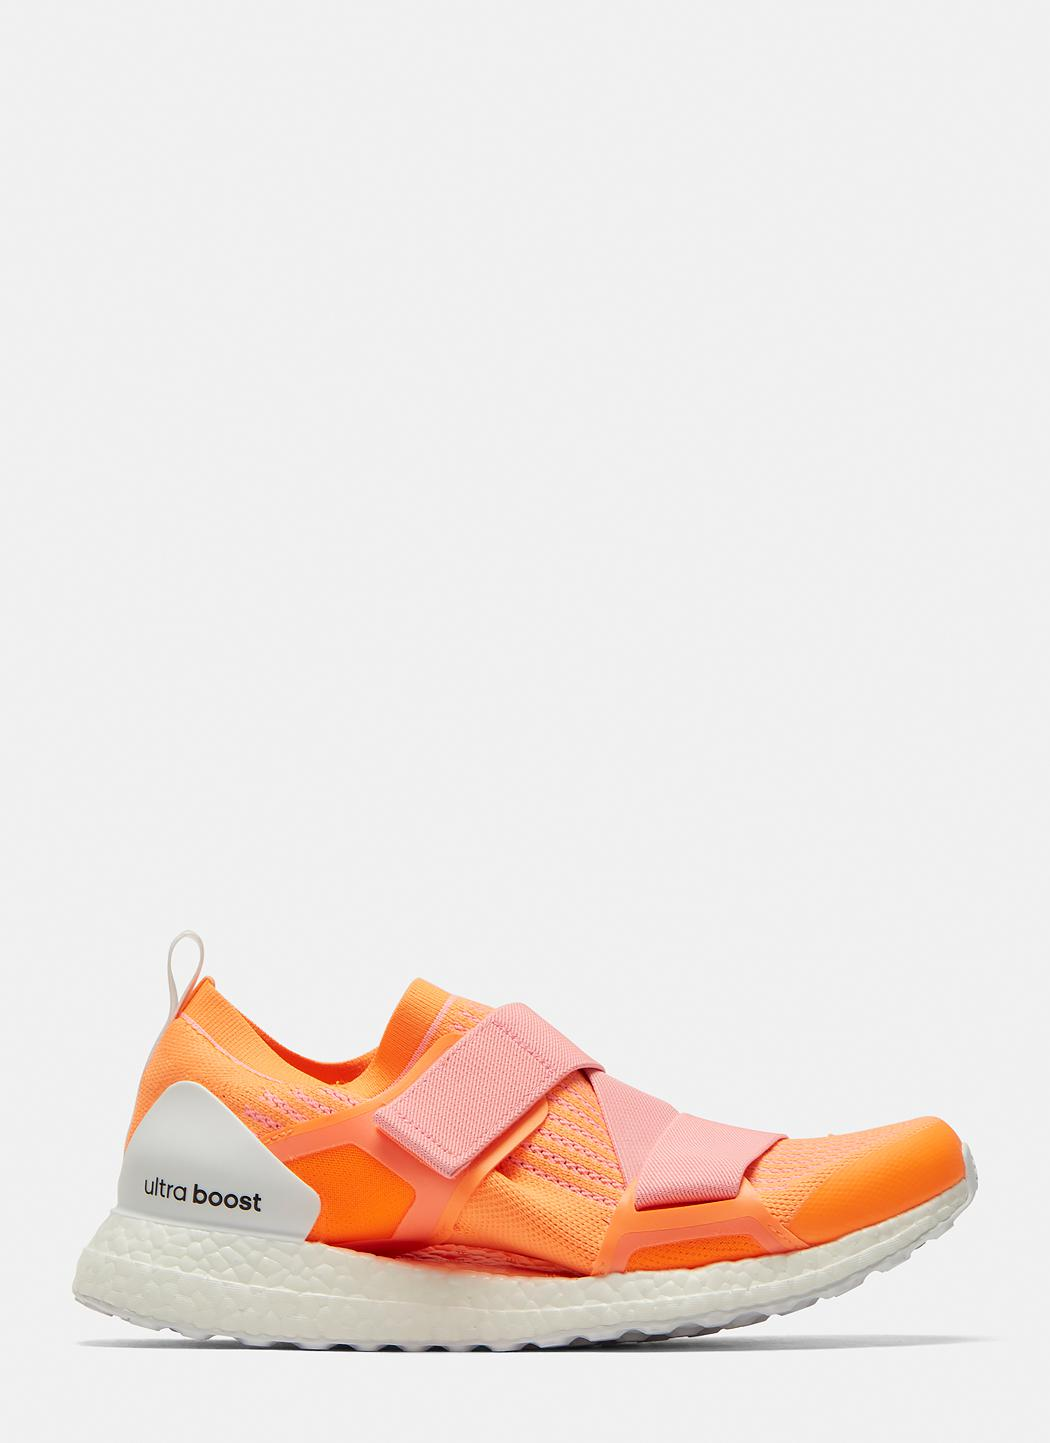 2a7dd4247eb0c Lyst - Adidas By Stella Mccartney Ultraboost Glow Sneakers In Orange ...